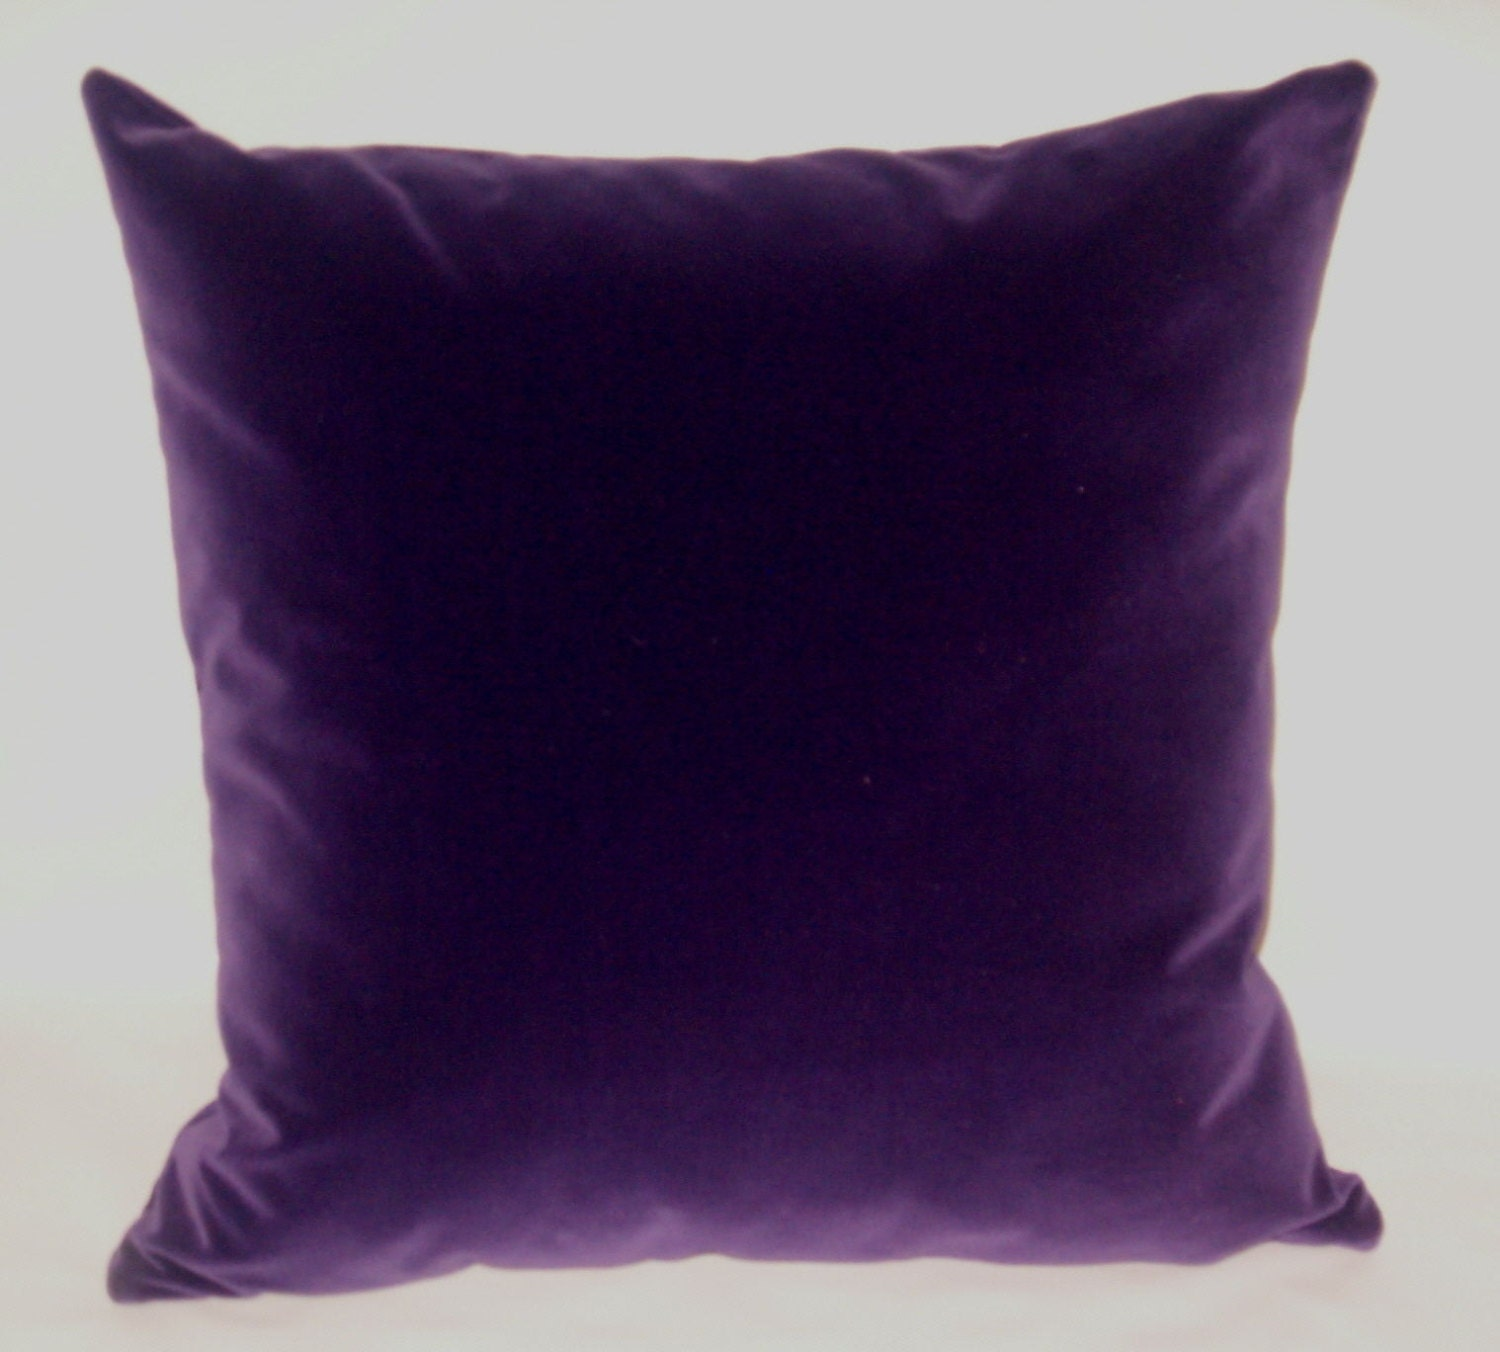 Purple Velvet Decorative Pillows : Ready to ship Luxurious velvet pillow 20 inches by KirtamDesigns